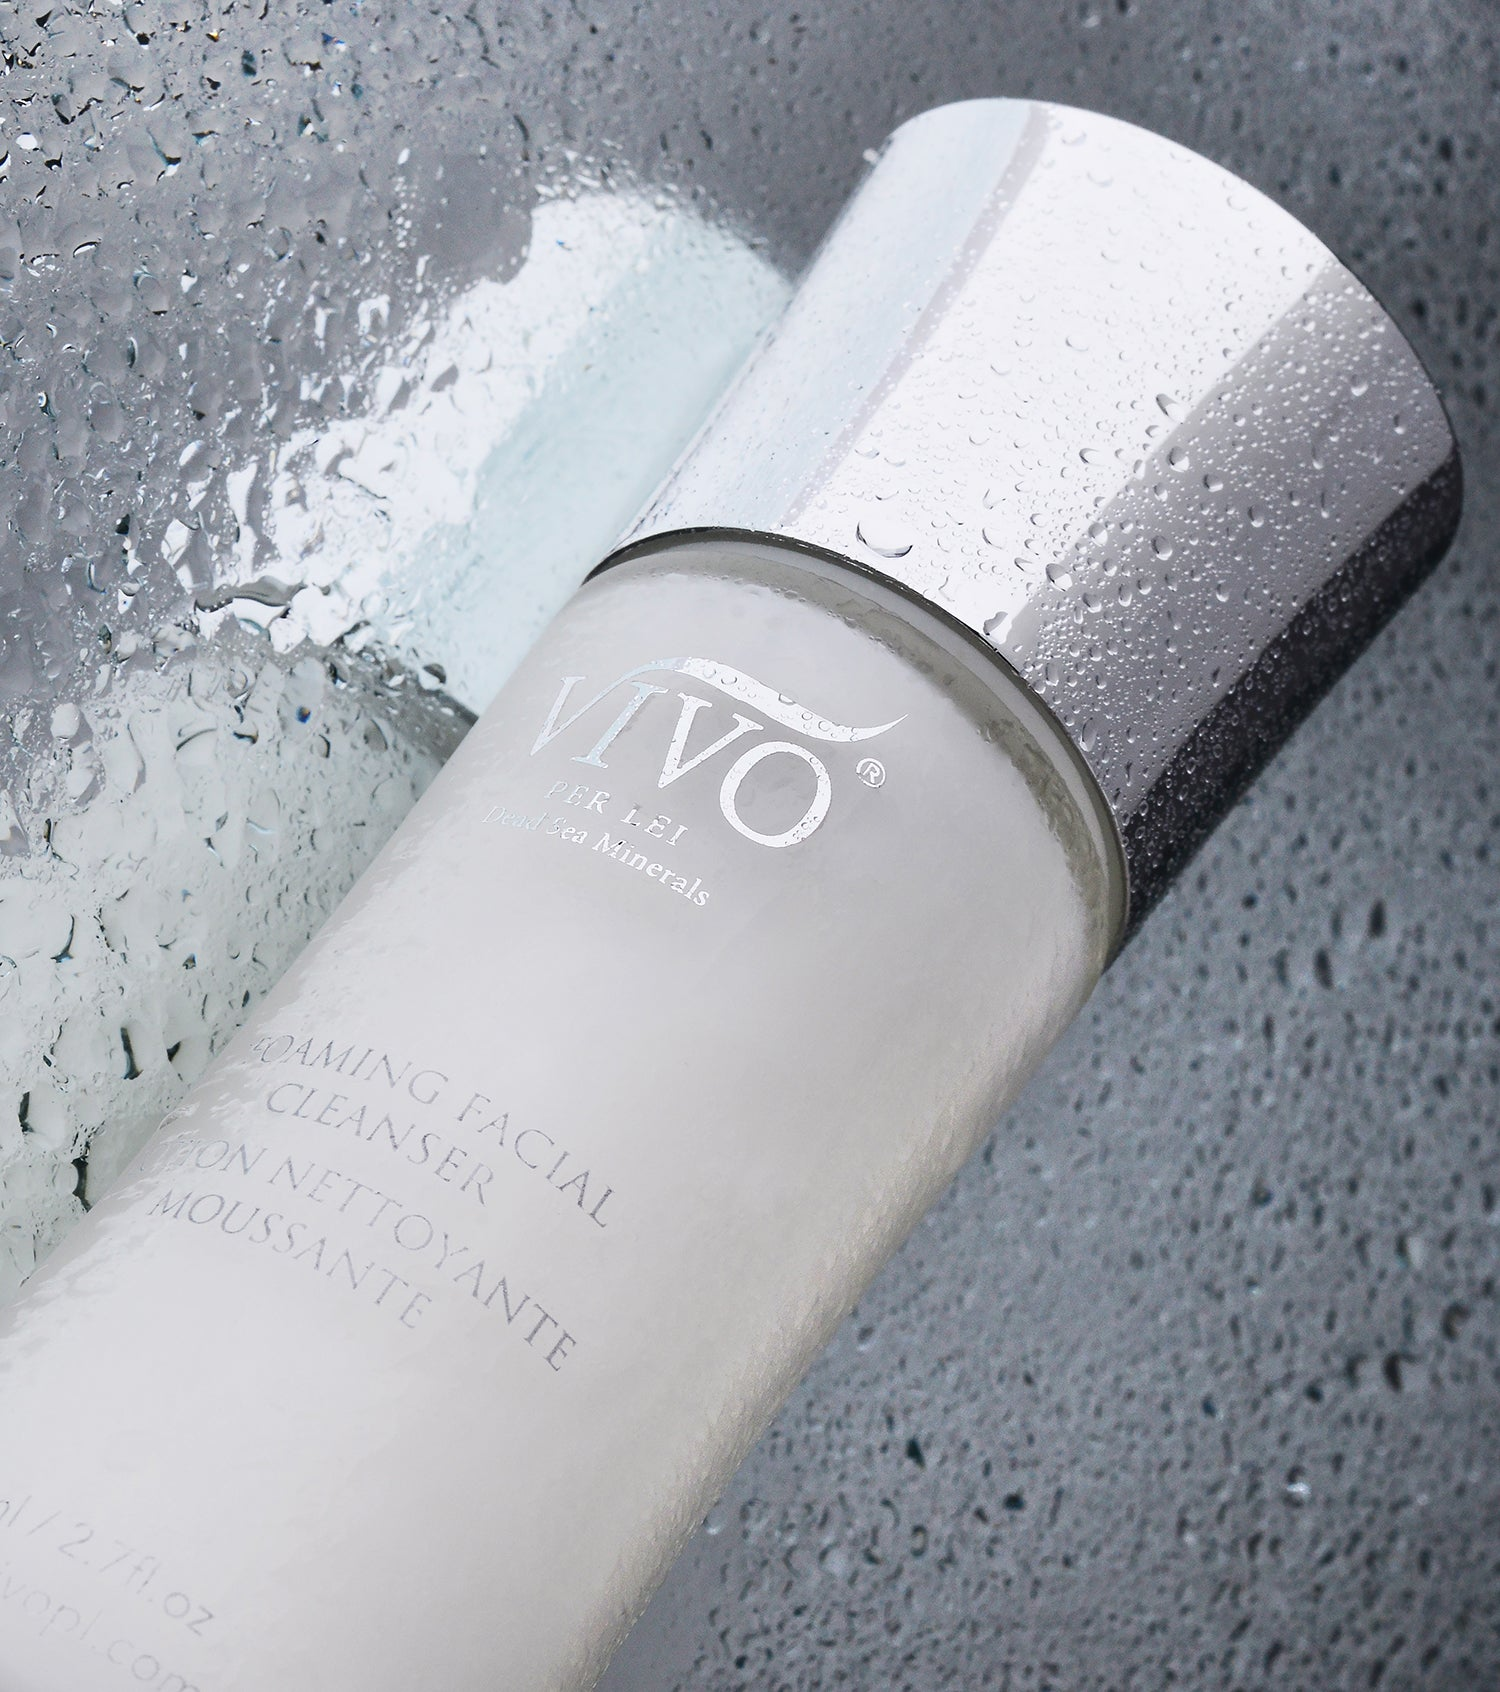 Vivo Per Lei Face Wash For Oily Skin